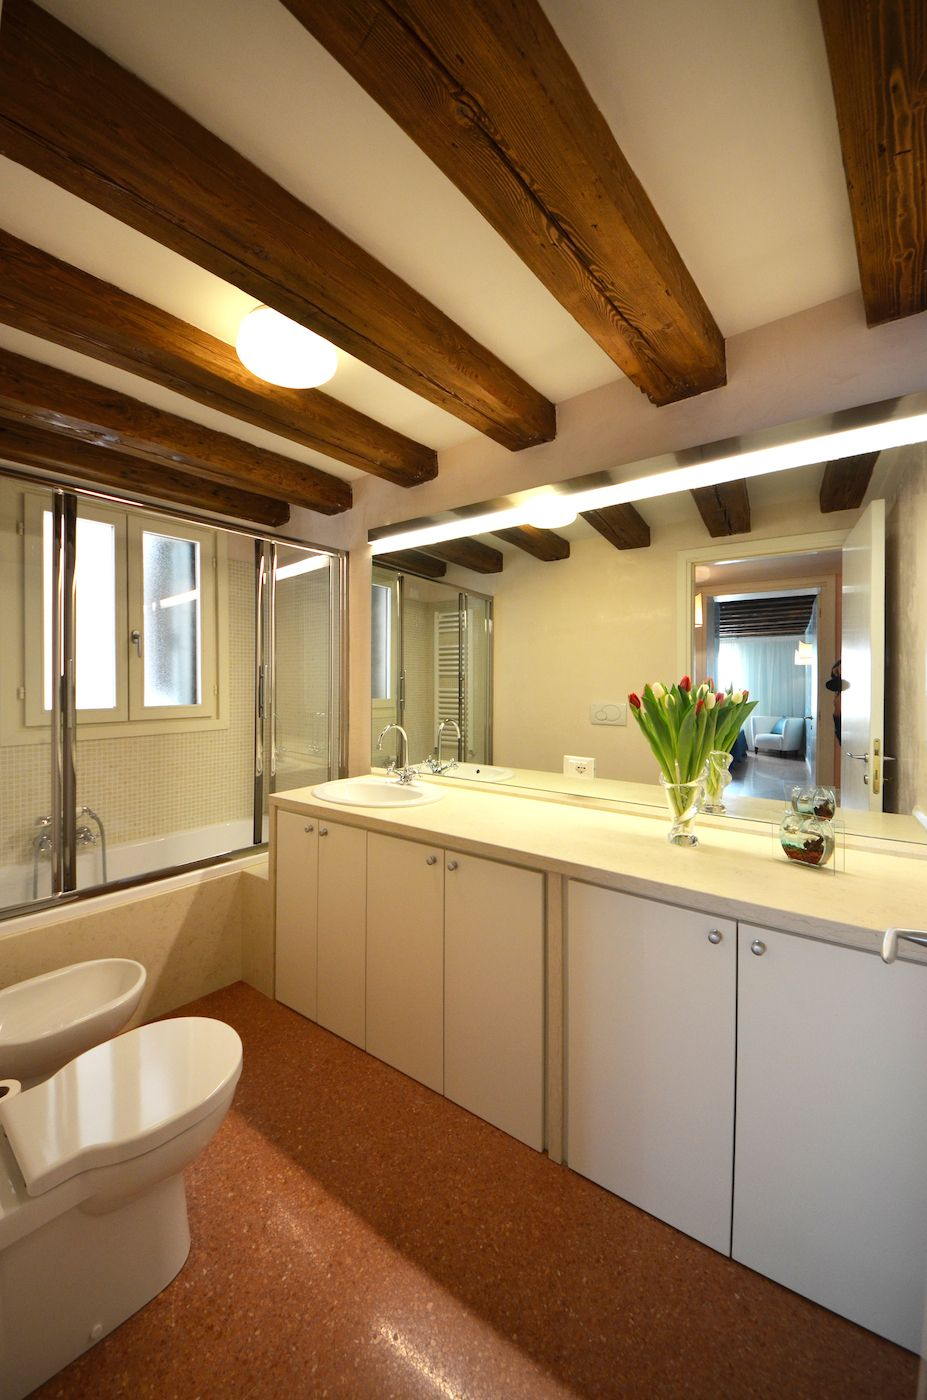 third bathroom with tub, nice and spacious